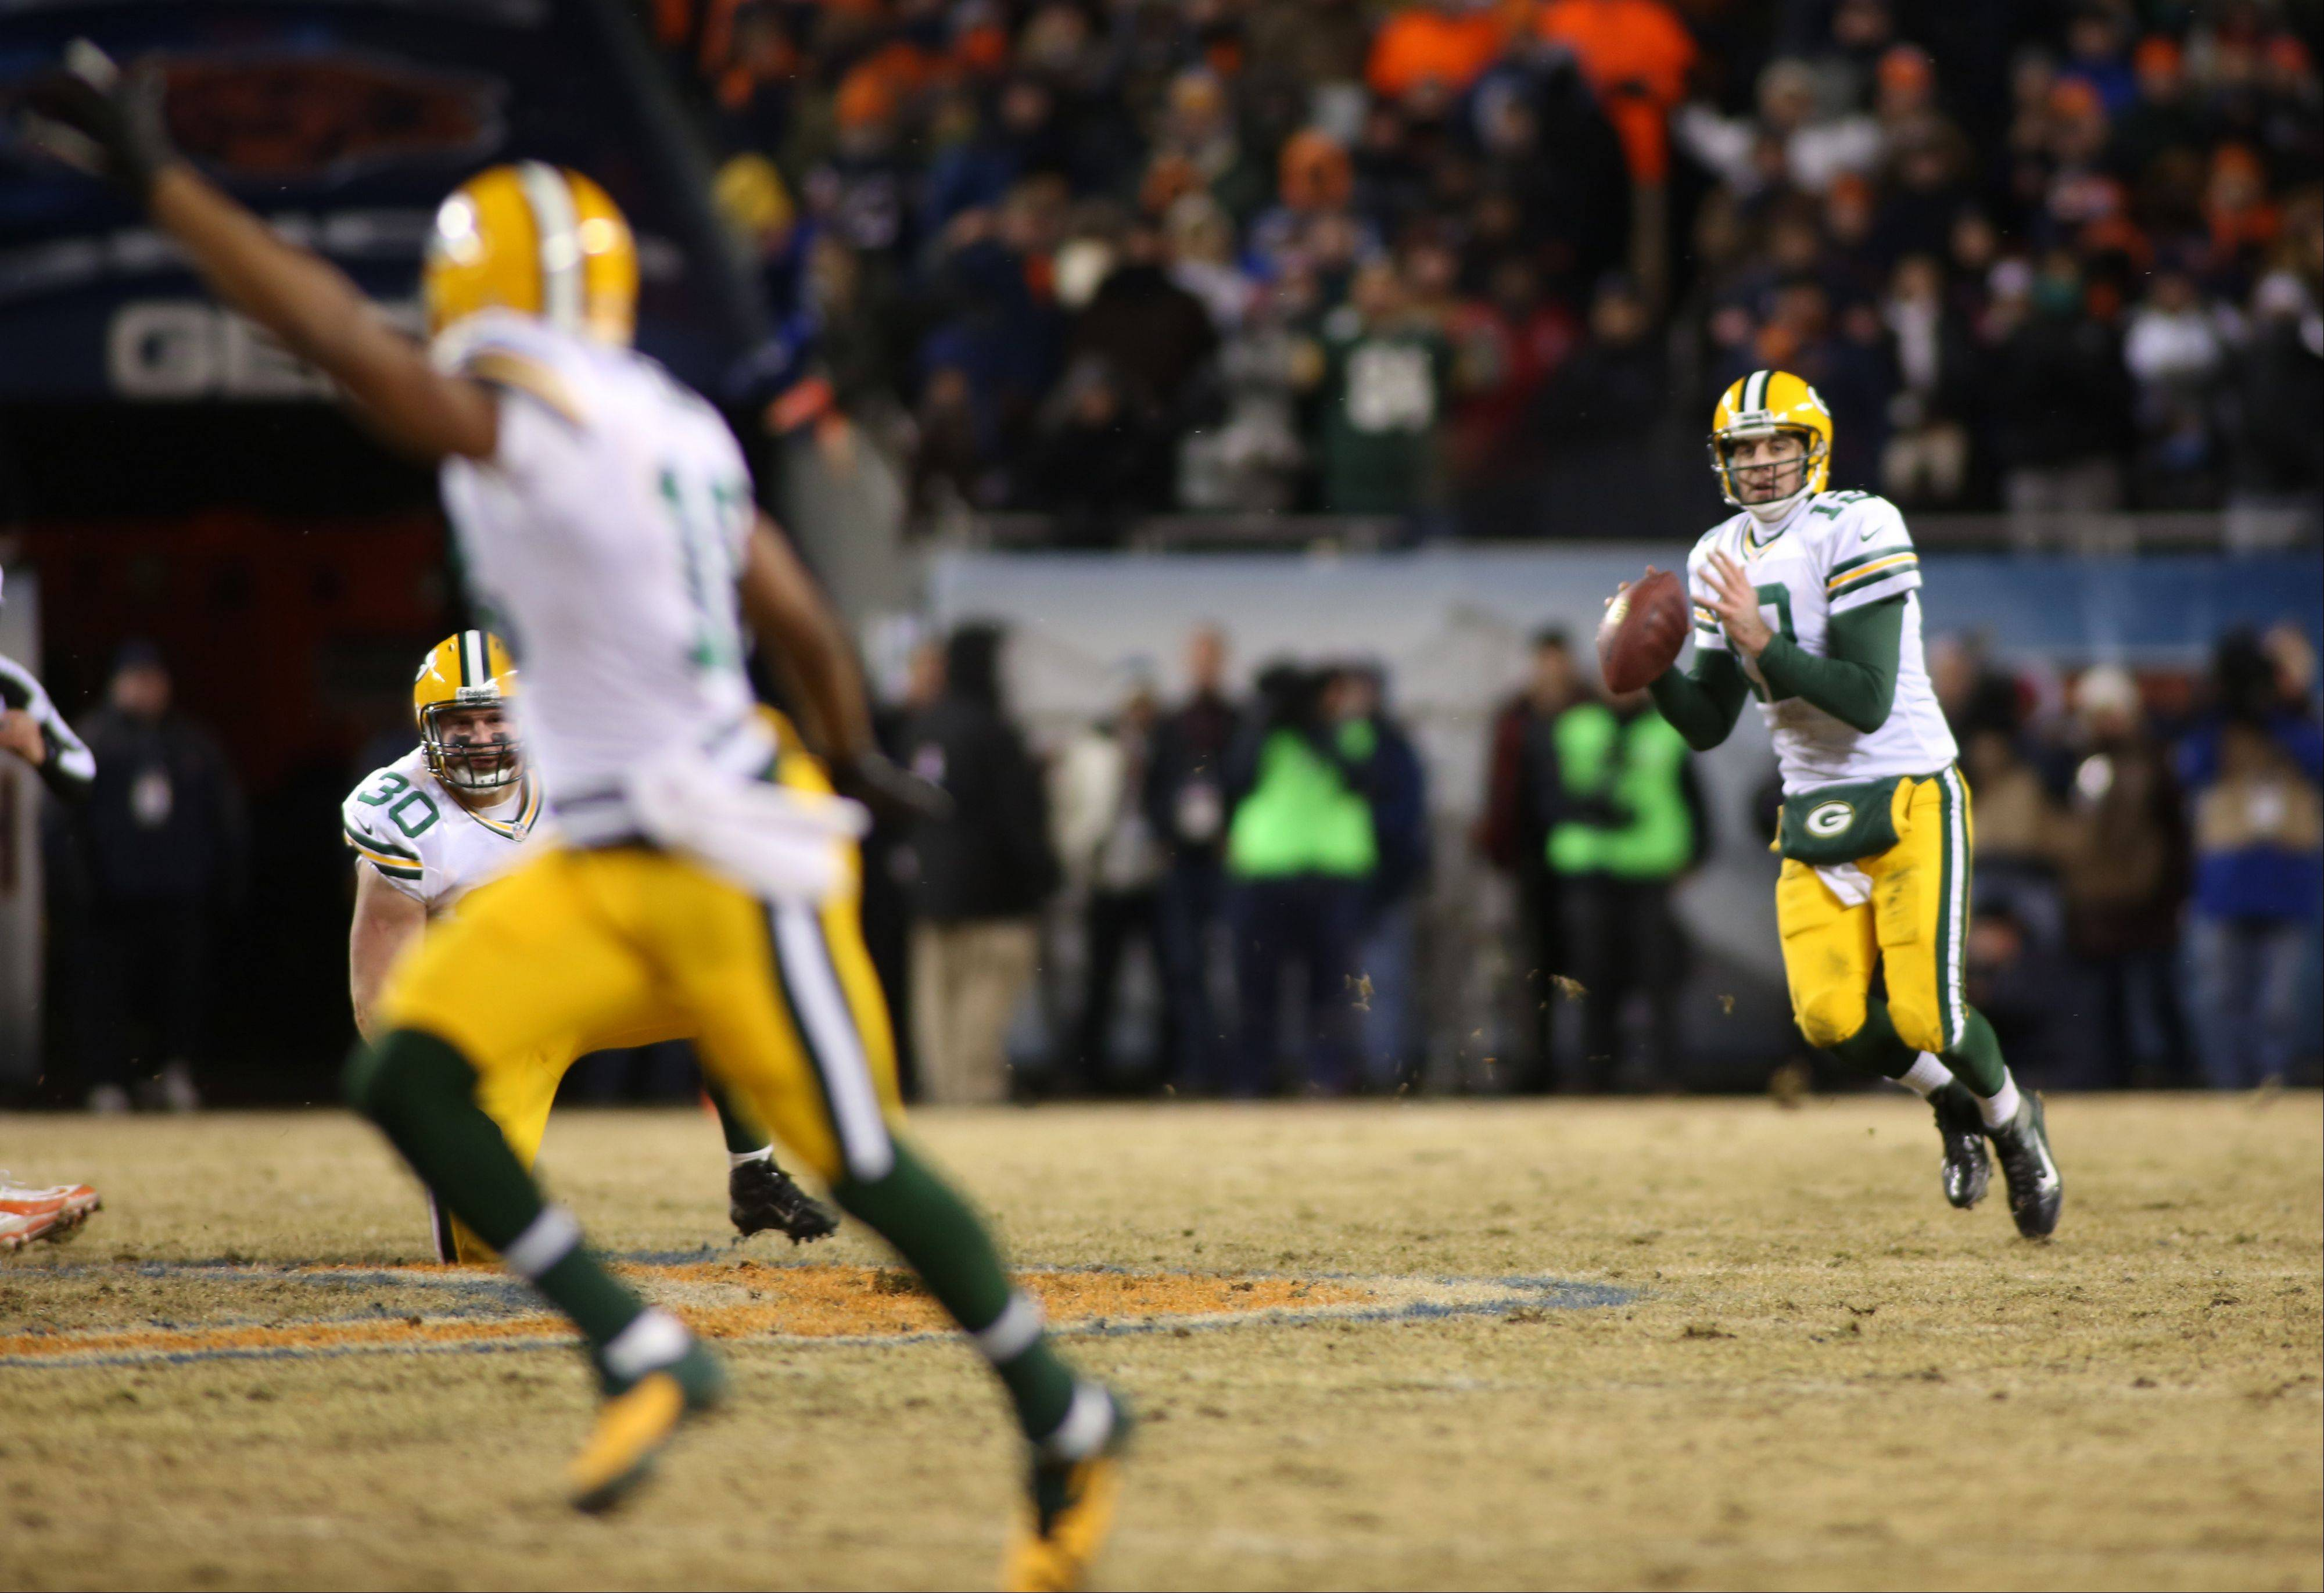 Aaron Rodgers looks down field before throwing his game winning touchdown to Randall Cobb.